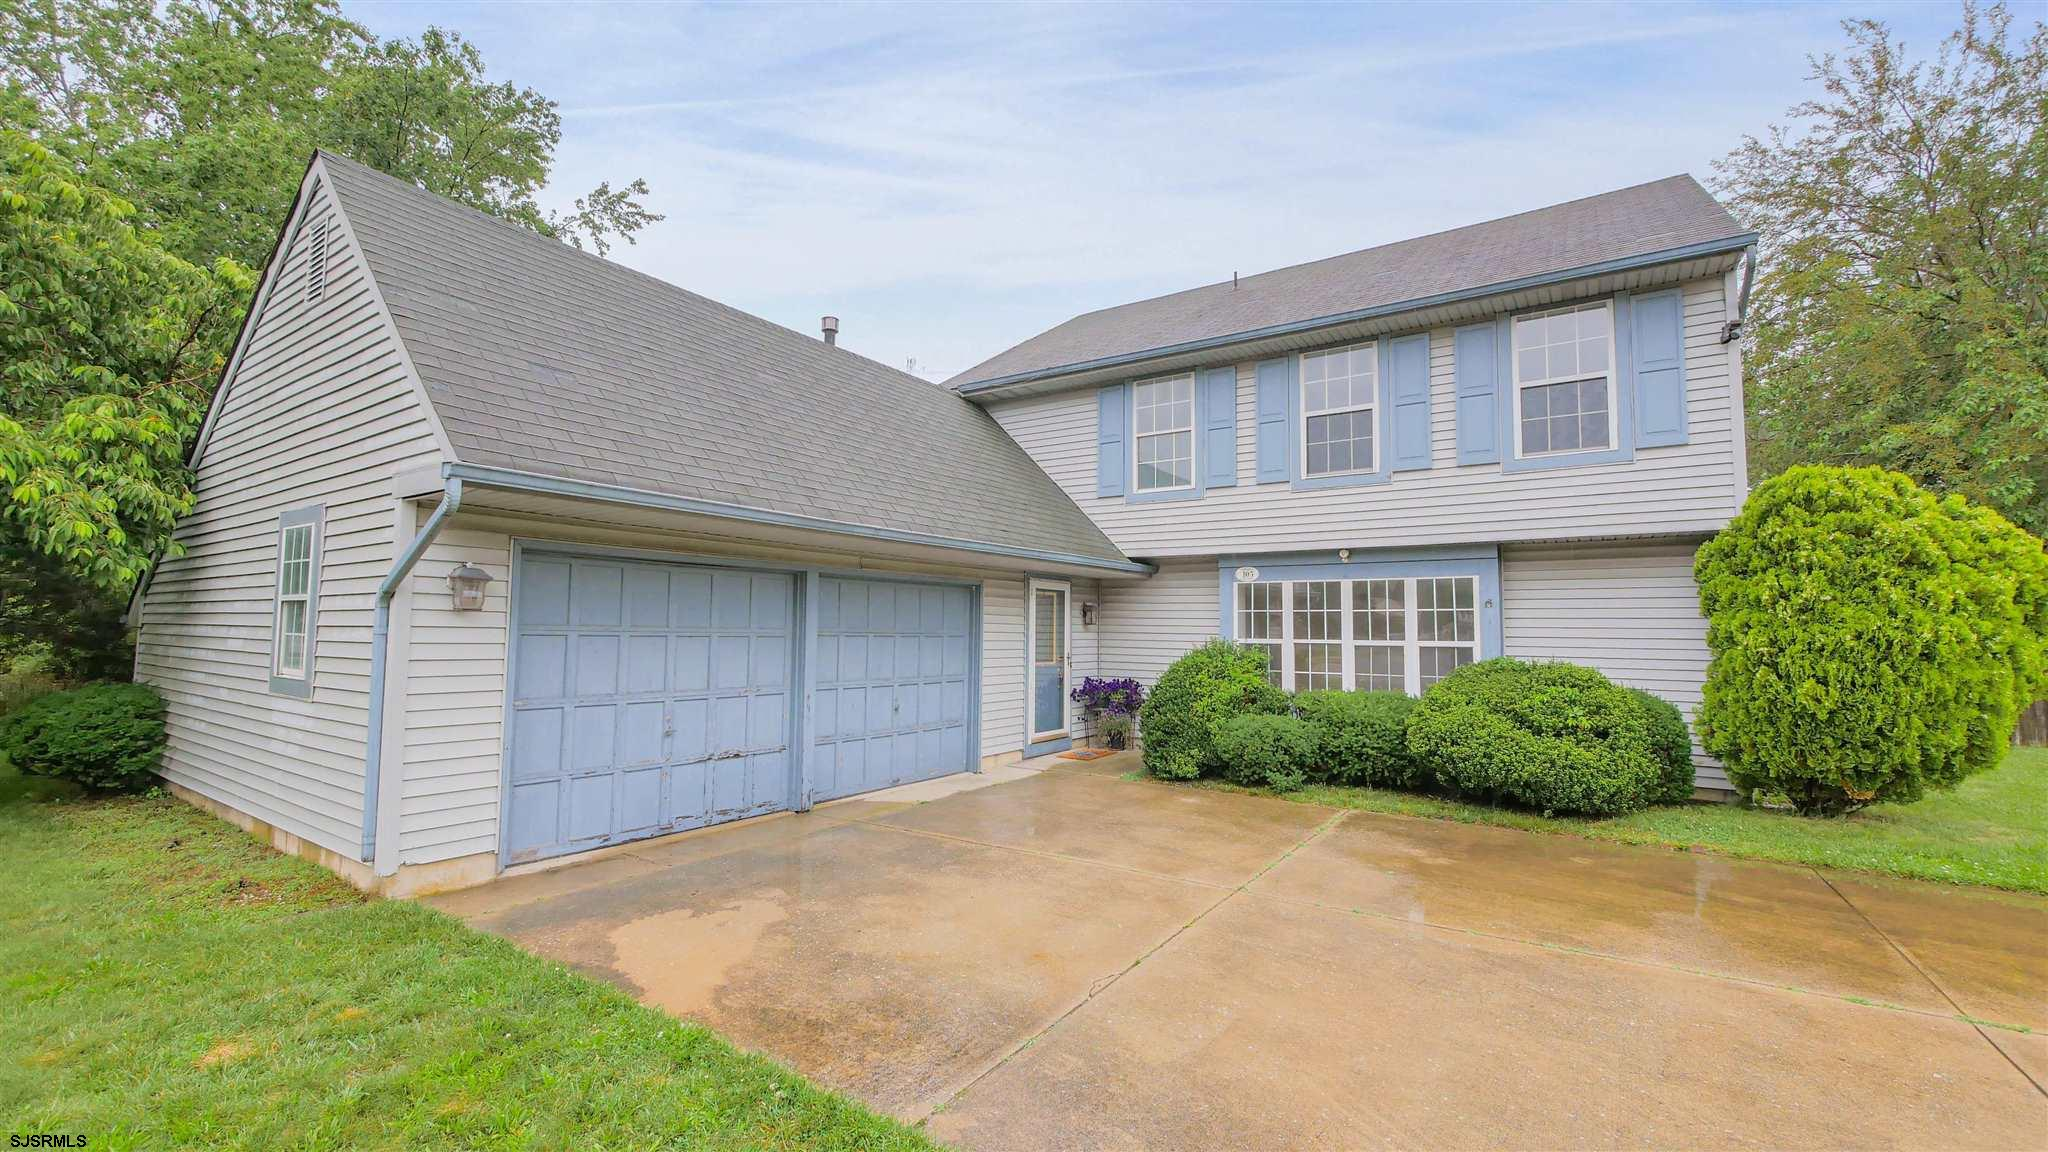 Location! Location! Location! Hurry up and check out this 3 bedroom two and half bath home with an i